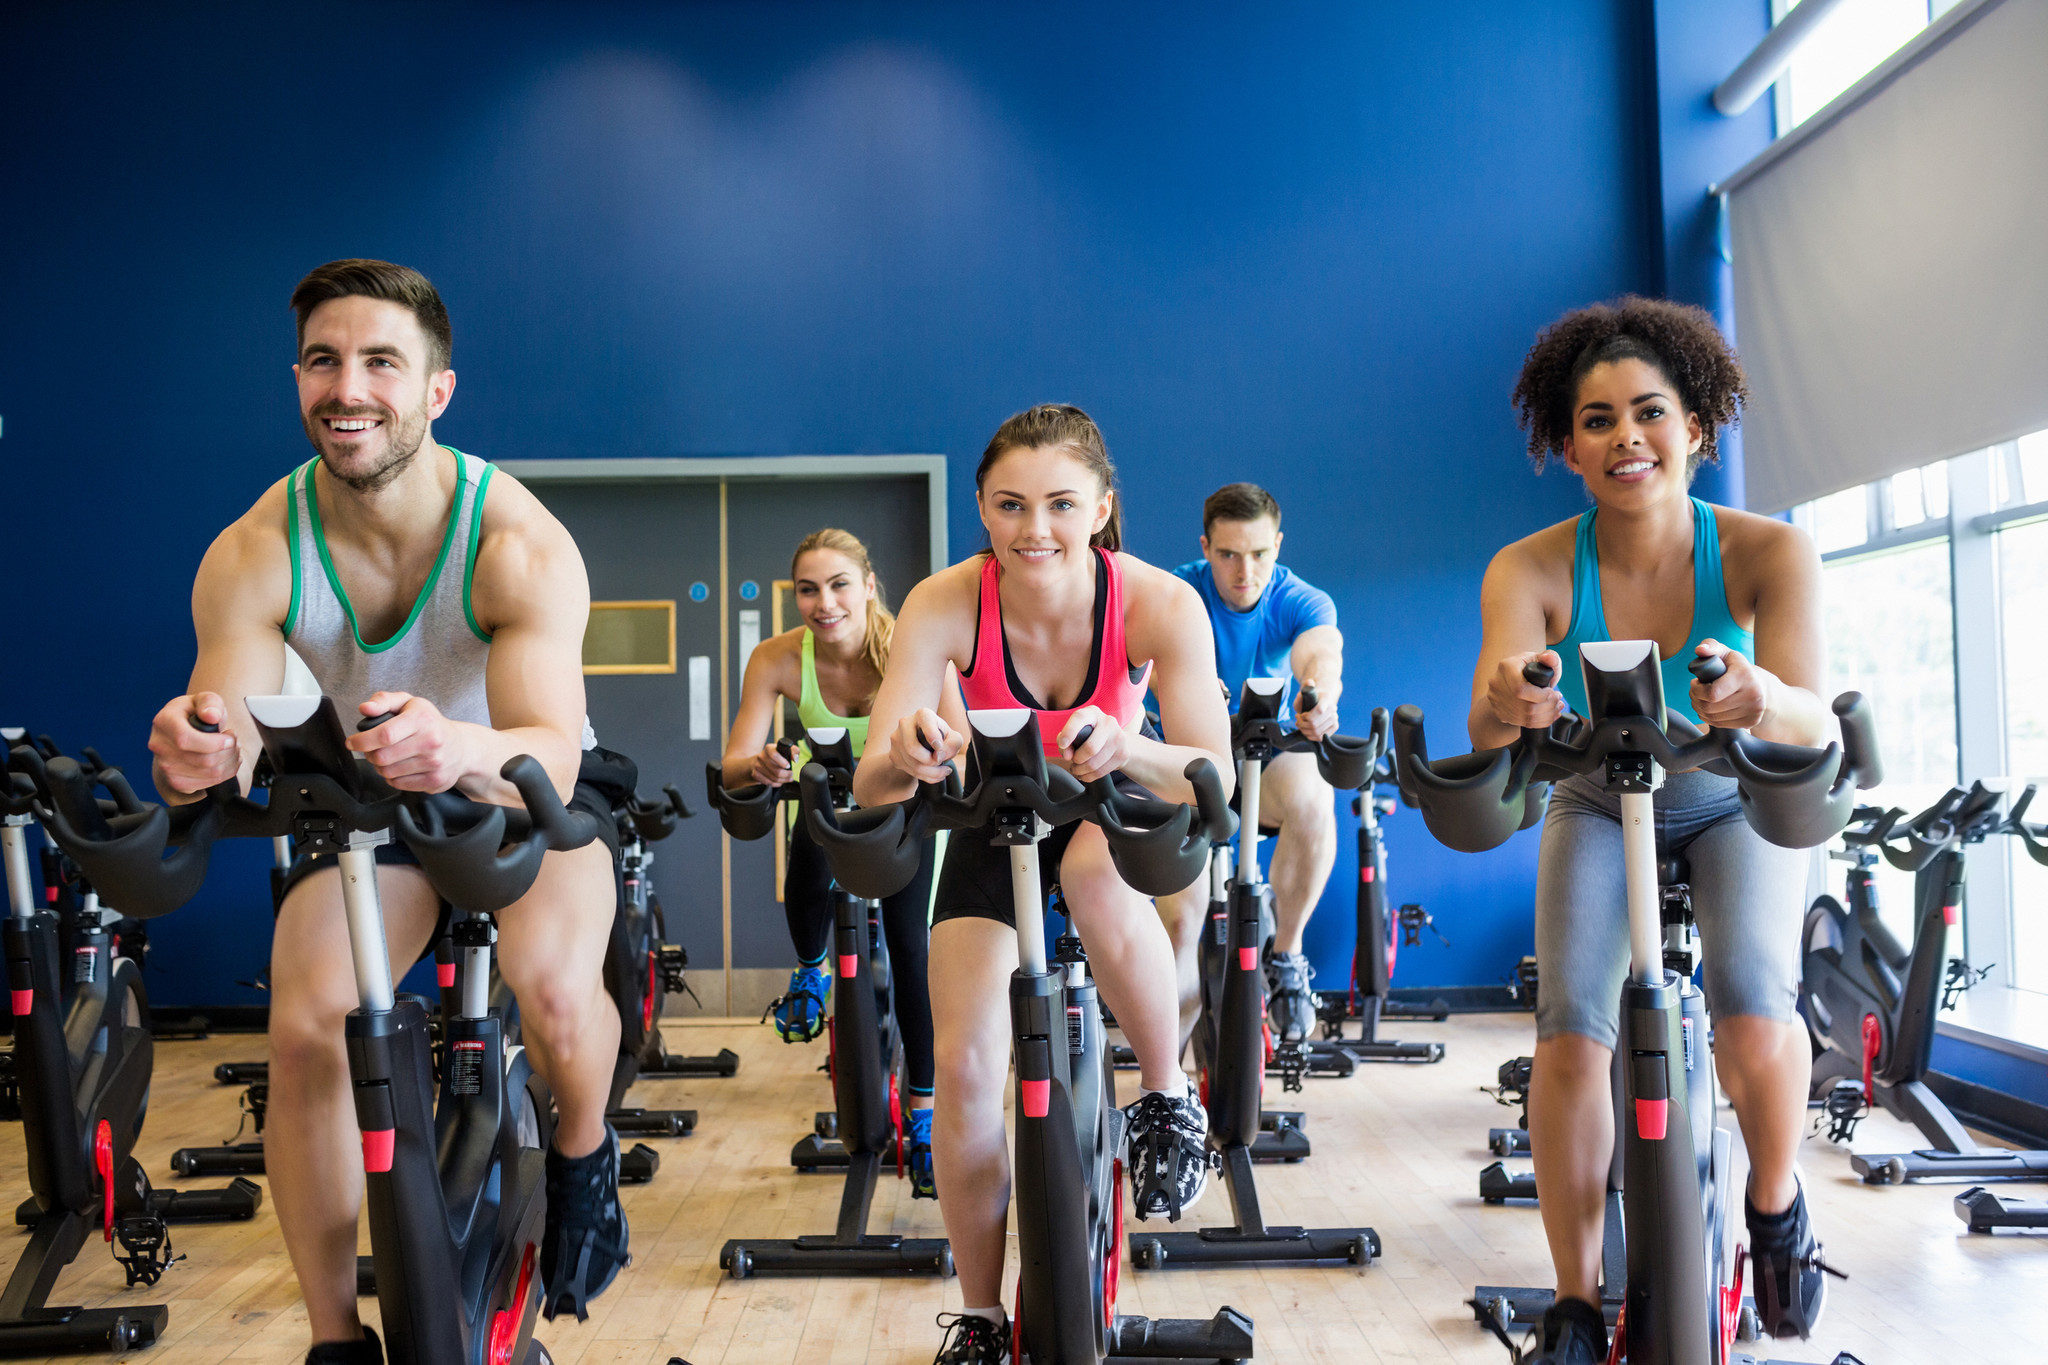 11 Things to Know Before Your First Spin Class